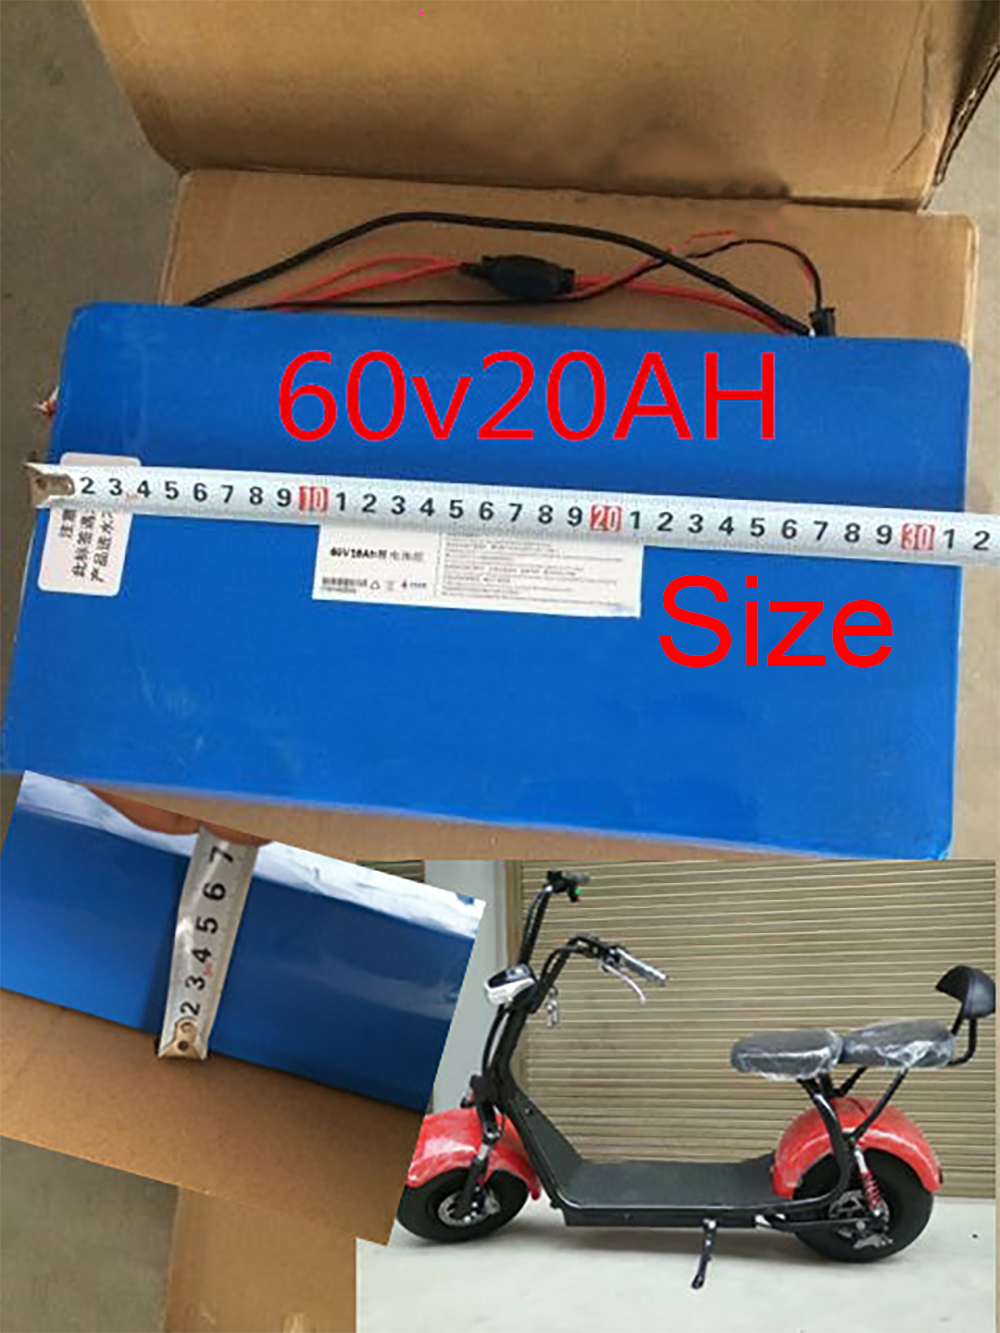 No Tax Waterproof 60V 20Ah Lithium ion eBike Battery Pack 2000W Electric Scooter Battery For Harley Scooter Electric Bicycle 72v 3000w lithium ion battery pack for scooter e motorcycle electric bike